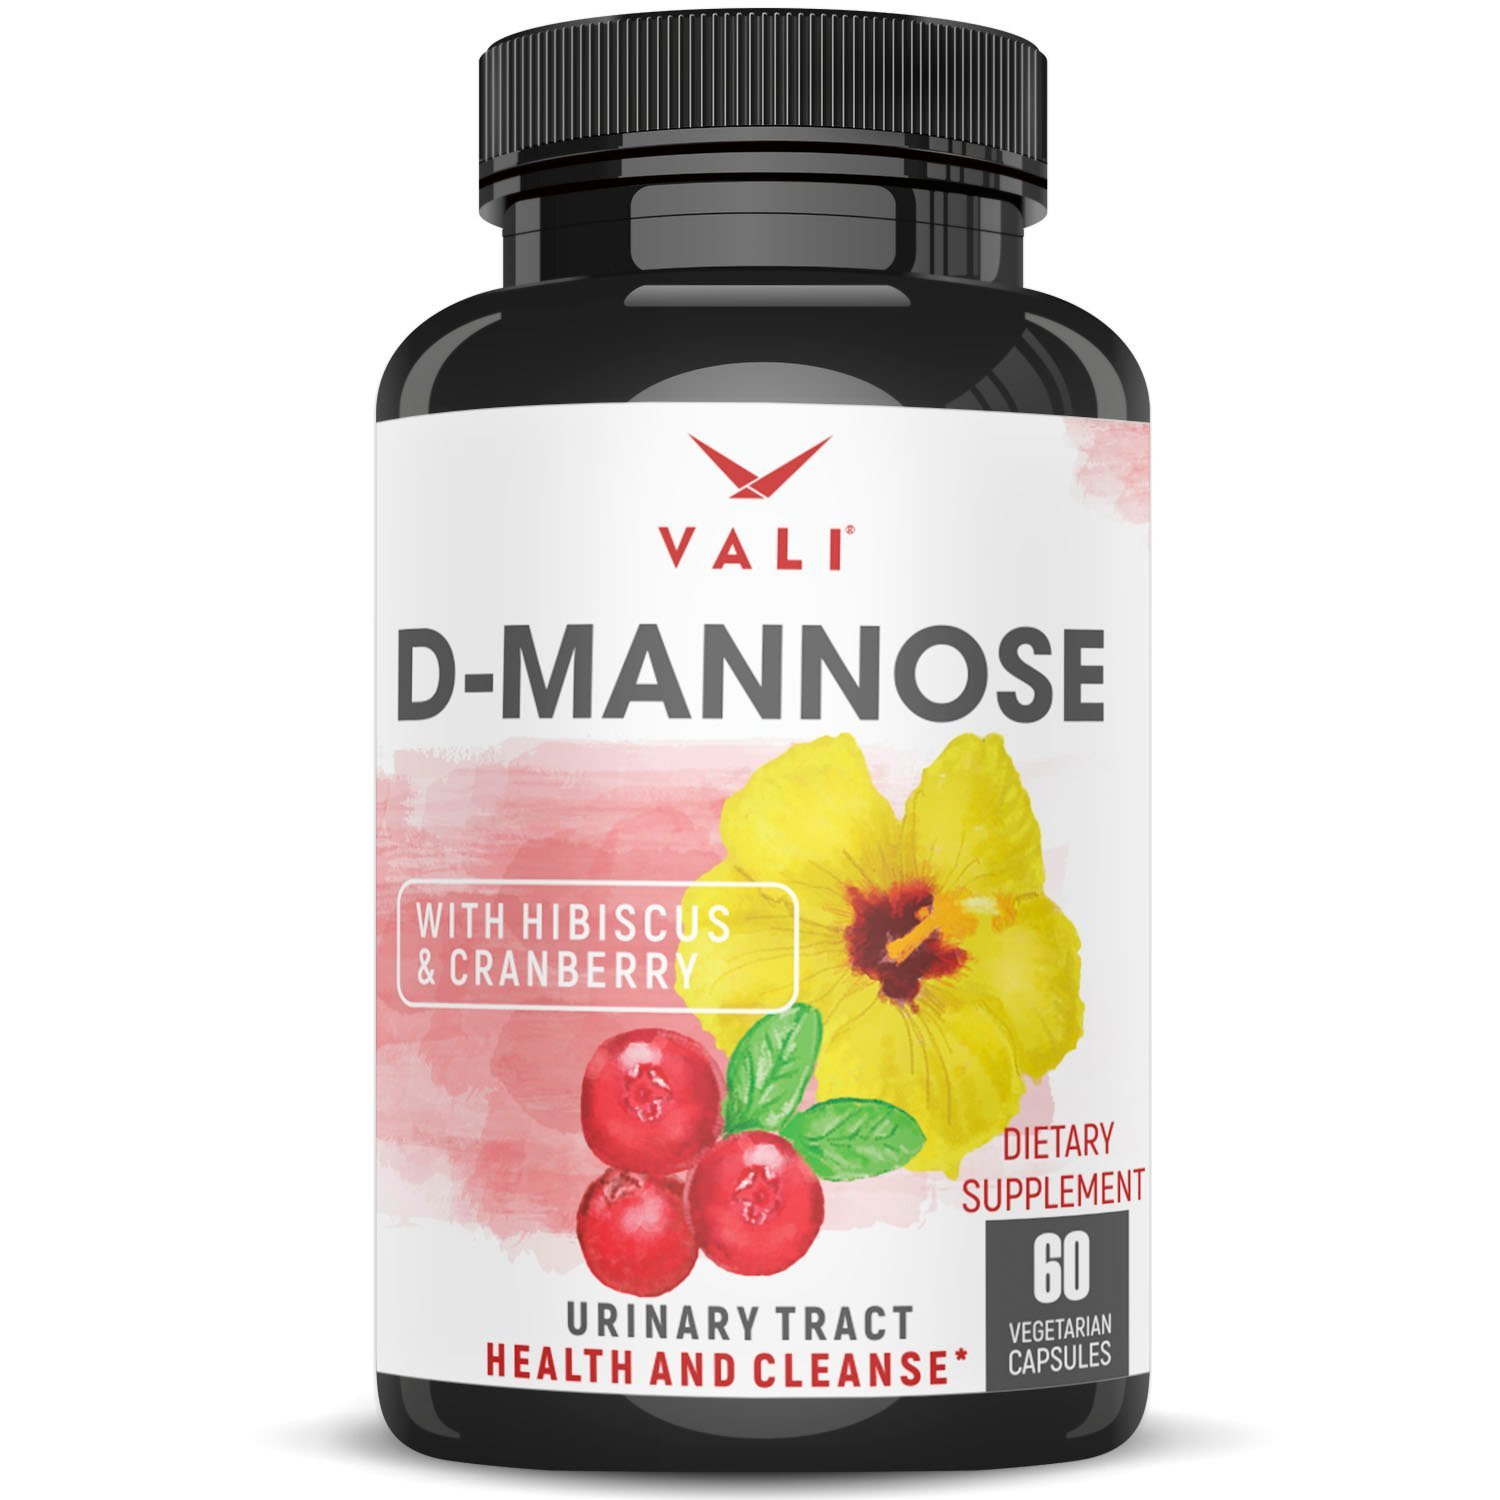 D Mannose 1000 mg Urinary Tract Infection Formula - Triple Strength Organic Cranberry 50:1 Concentrate & Hibiscus - Healthy Bladder Function, Natural Yeast Cleanse, UTI Support - 60 Veggie Capsules by VALI